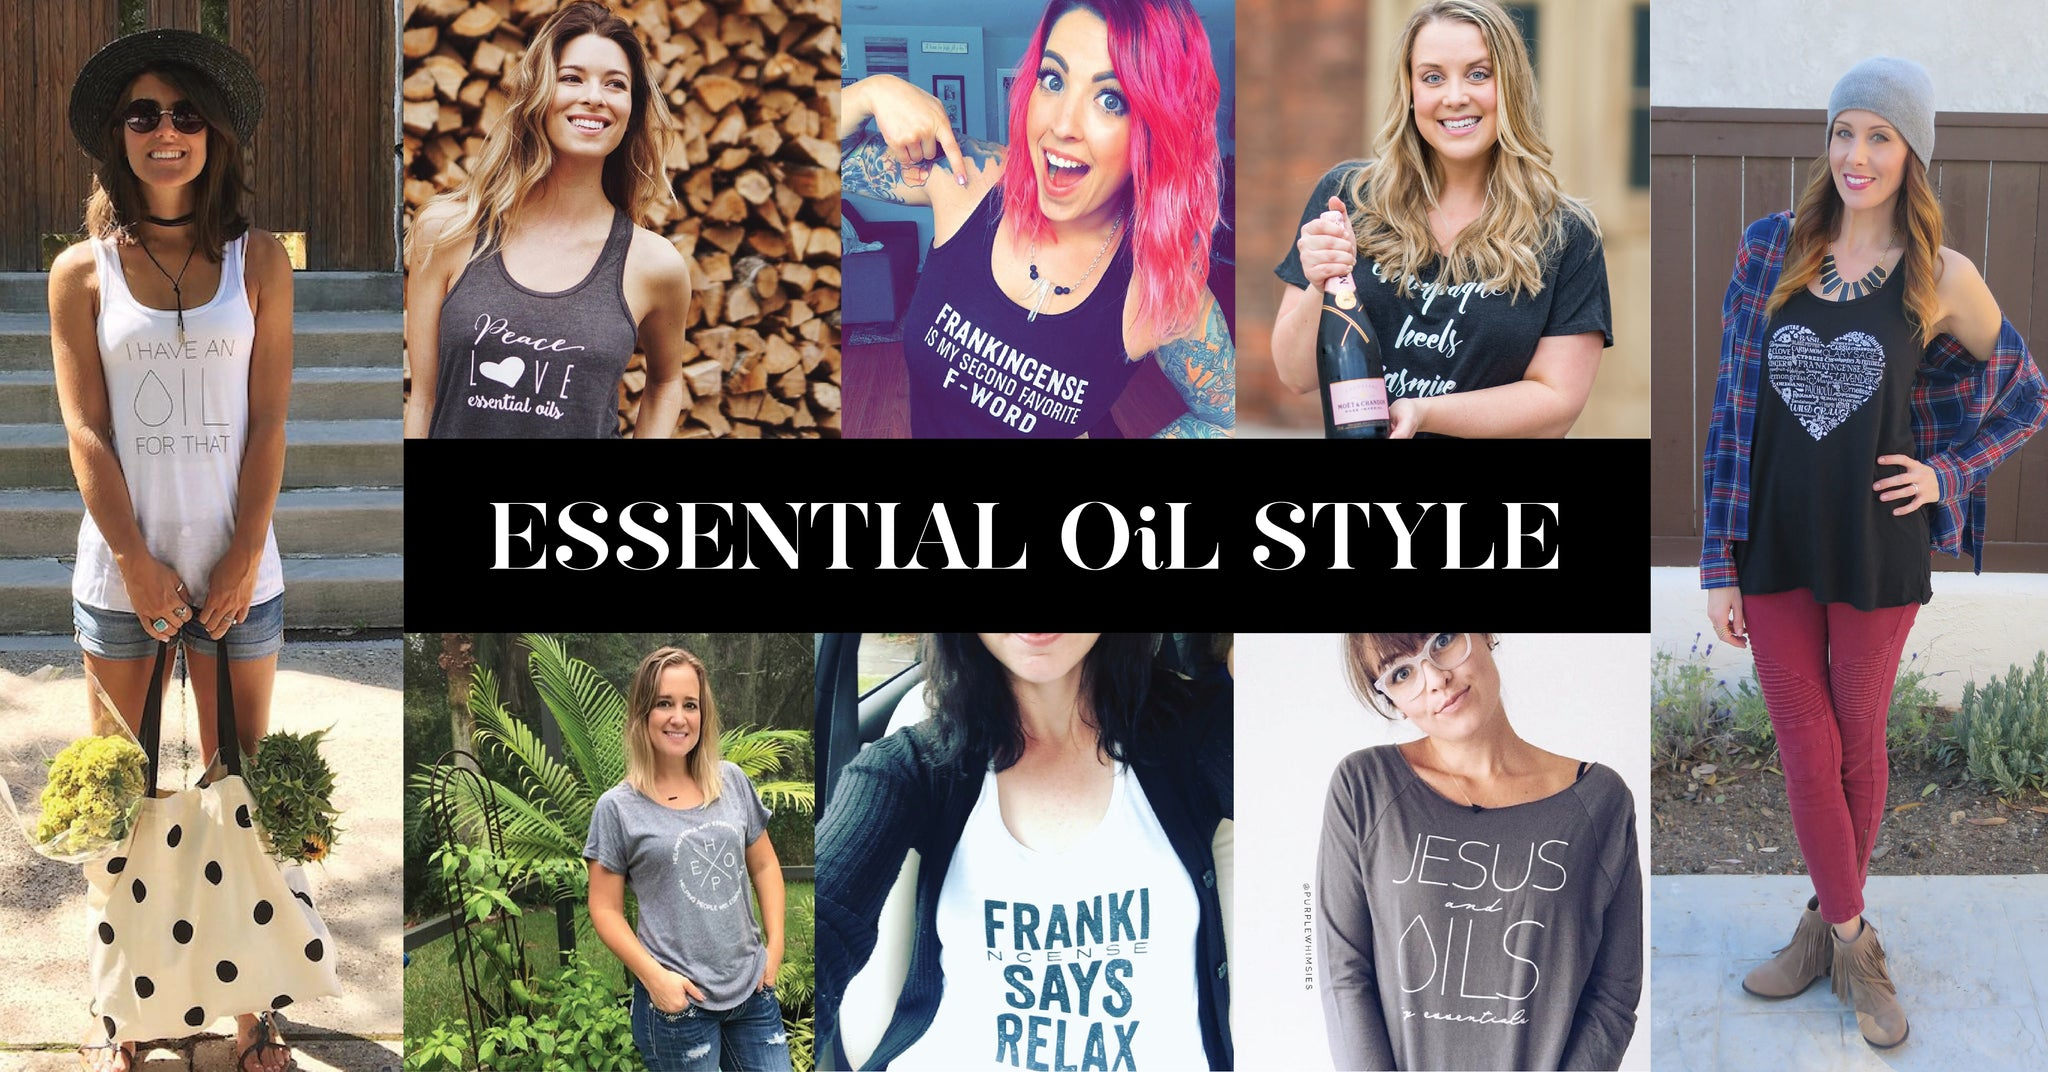 Essential oil t-shirts, Essential oil tees, Essential oil tanks, Essential oil tops, Essential oil tshirts, Essential oil apparel, Essential oil gear, Essential oil clothes, Essential oil cute tops, Essential oil cute t-shirts, Essential oil swag, Essential oil gifts,   essential oil men t-shirts, essential oil men gifts, essential oil kids, essential oil kids t-shirts, essential oil child t-shirts,  essential oil baby t-shirts,  essential oil singlets, essential oil tee shirts, essential oil shirts, doterra  t-shirts, doterra tees, doterra tanks, doterra tops, doterra tshirts, doterra gear, doterra swag, doterra gifts, doterra apparel, doterra clothes, doterra cute tops, doterra cute t-shirts, doterra men t-shirts, doterra tee shirt, young living t-shirts, young living tees, young living tanks, young living tops, young living tshirts, young living gear, young living swag, young living gifts, young living apparel, young living clothes, young living cute tops, young living cute t-shirts, young living men t-shirts, young living tee shirt, oil convention t-shirts, oil convention tees, oil convention tanks, oil convention tops, oil convention tshirts, oil convention gear, oil convention swag, oil convention gifts, oil convention apparel, oil convention clothes, oil convention cute tops, oil convention cute t-shirts, oil convention men t-shirts